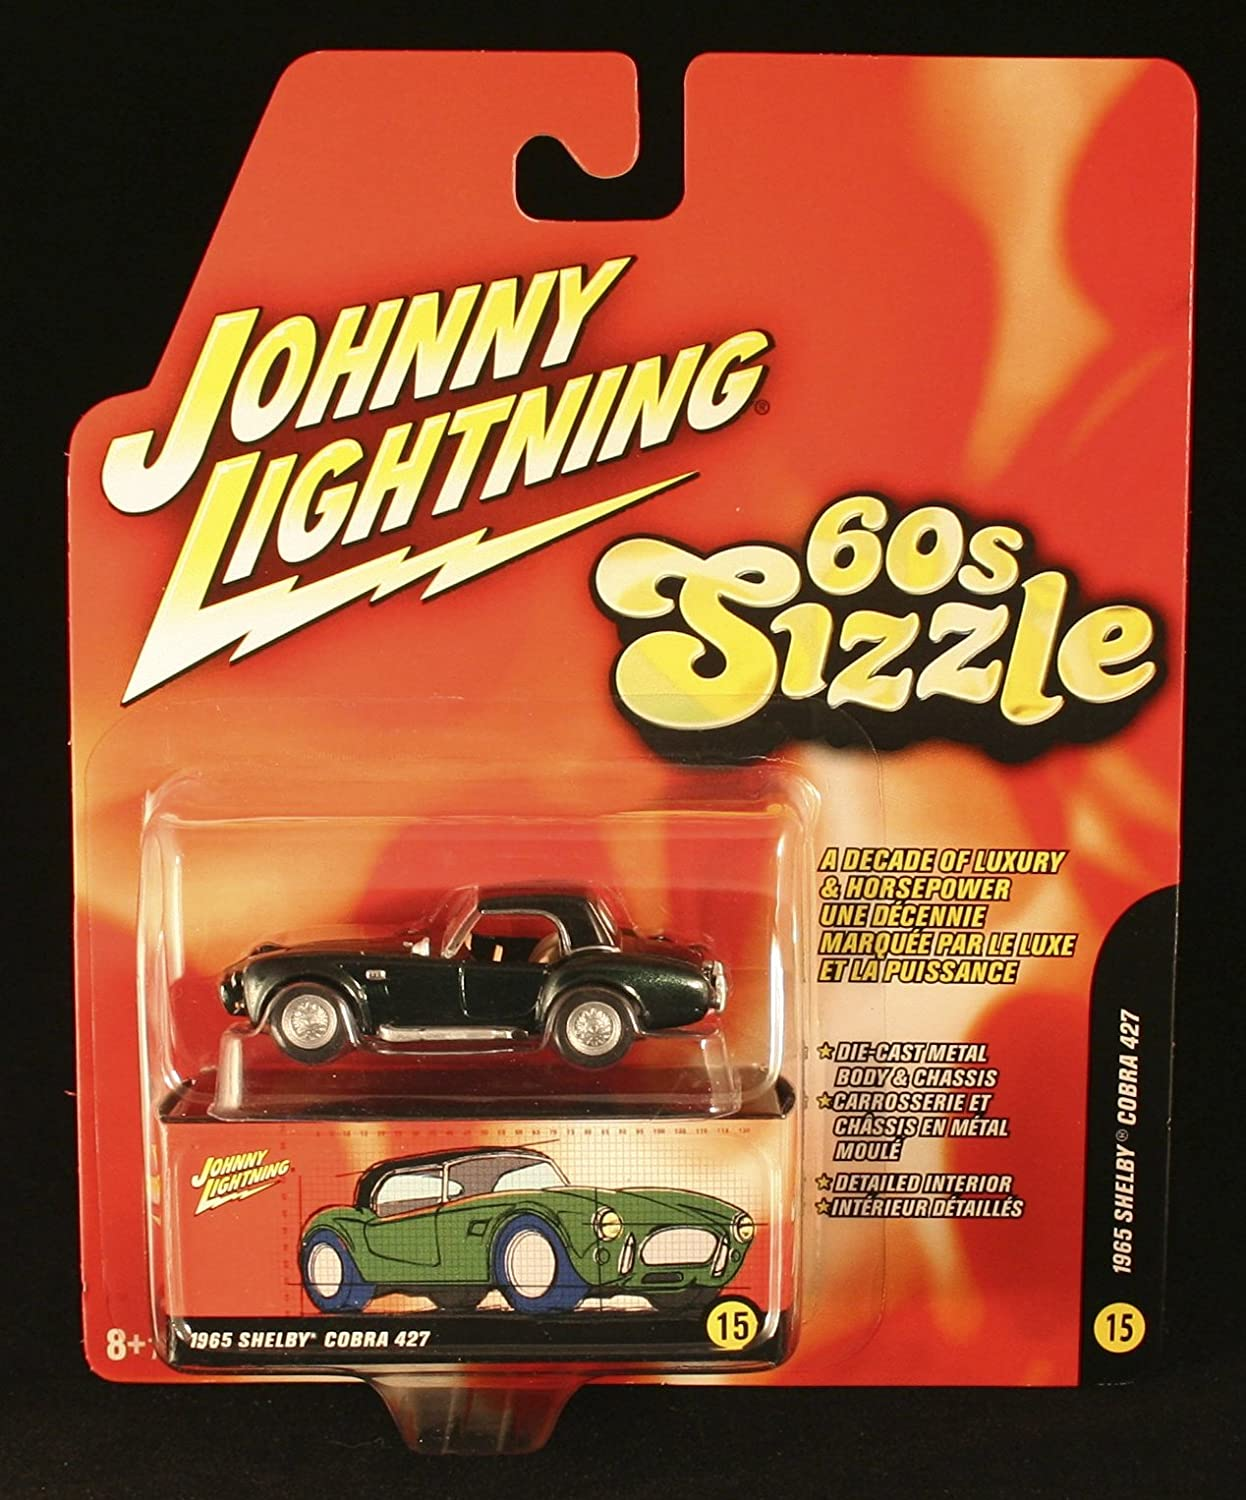 1965 SHELBY CORBA 427  60s Sizzle  Johnny Lightning 2006 DieCast Vehicle  15 of 16